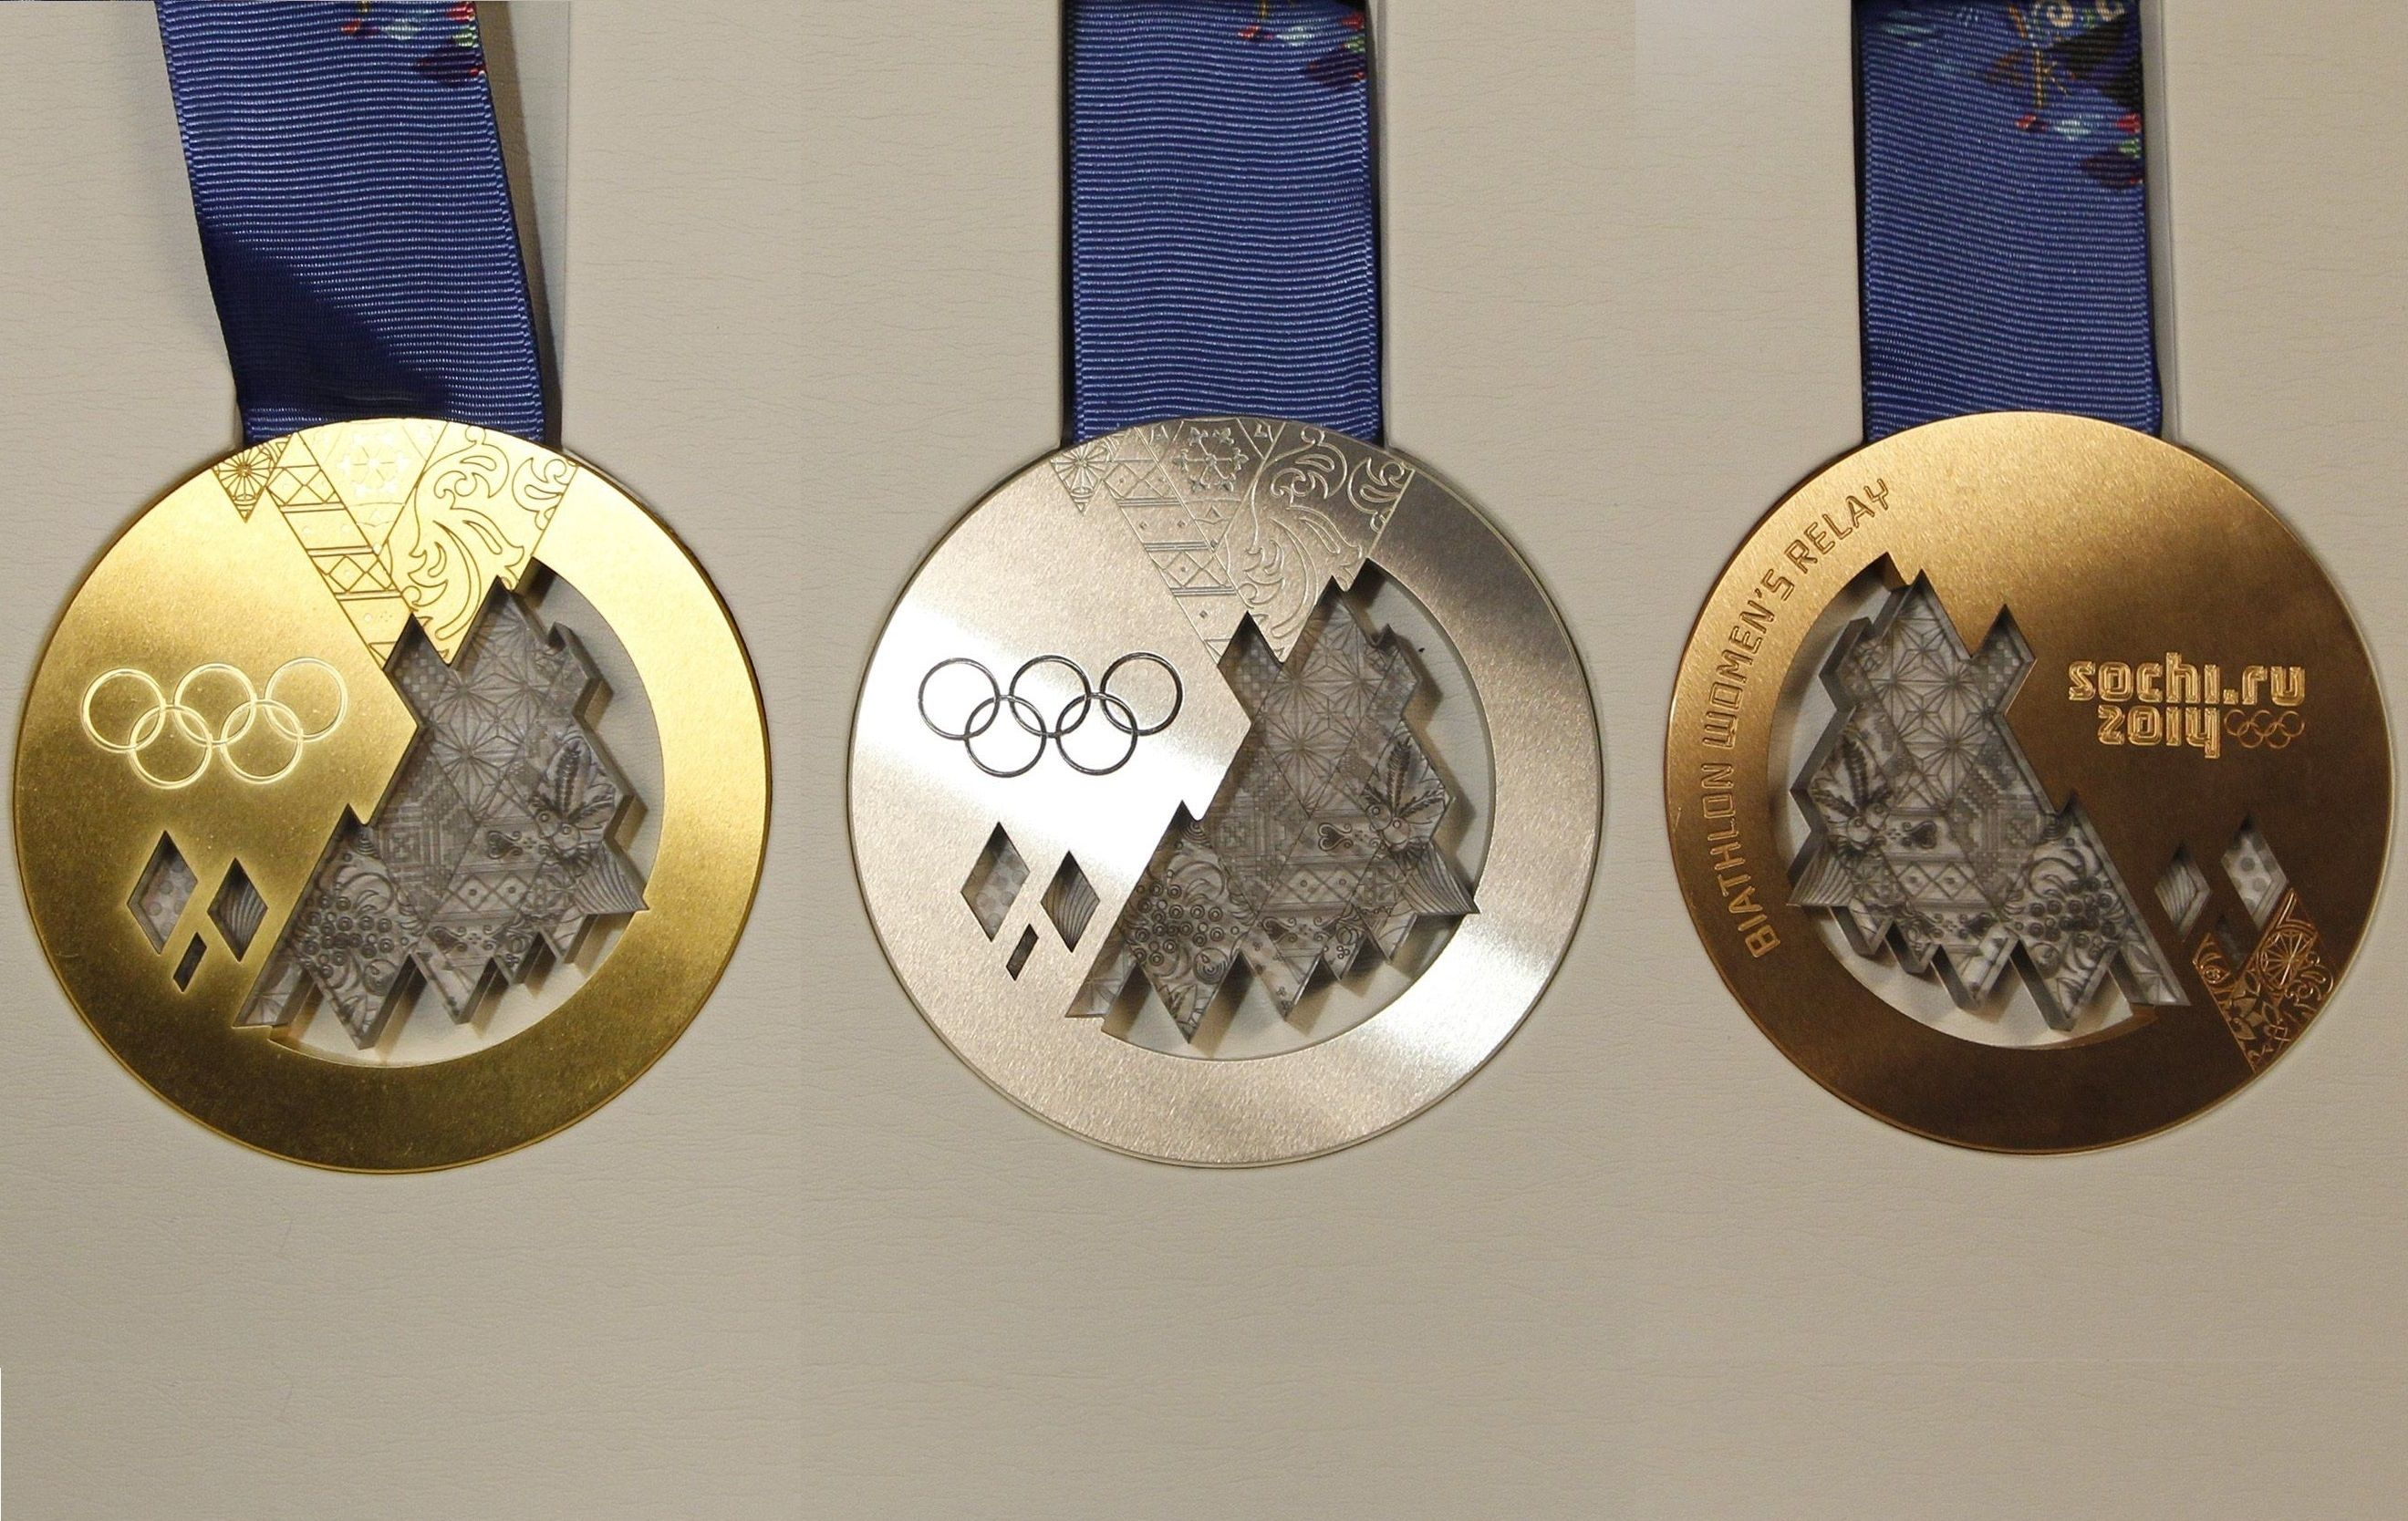 2640x1668 - Olympic Gold Metal Wallpapers 14